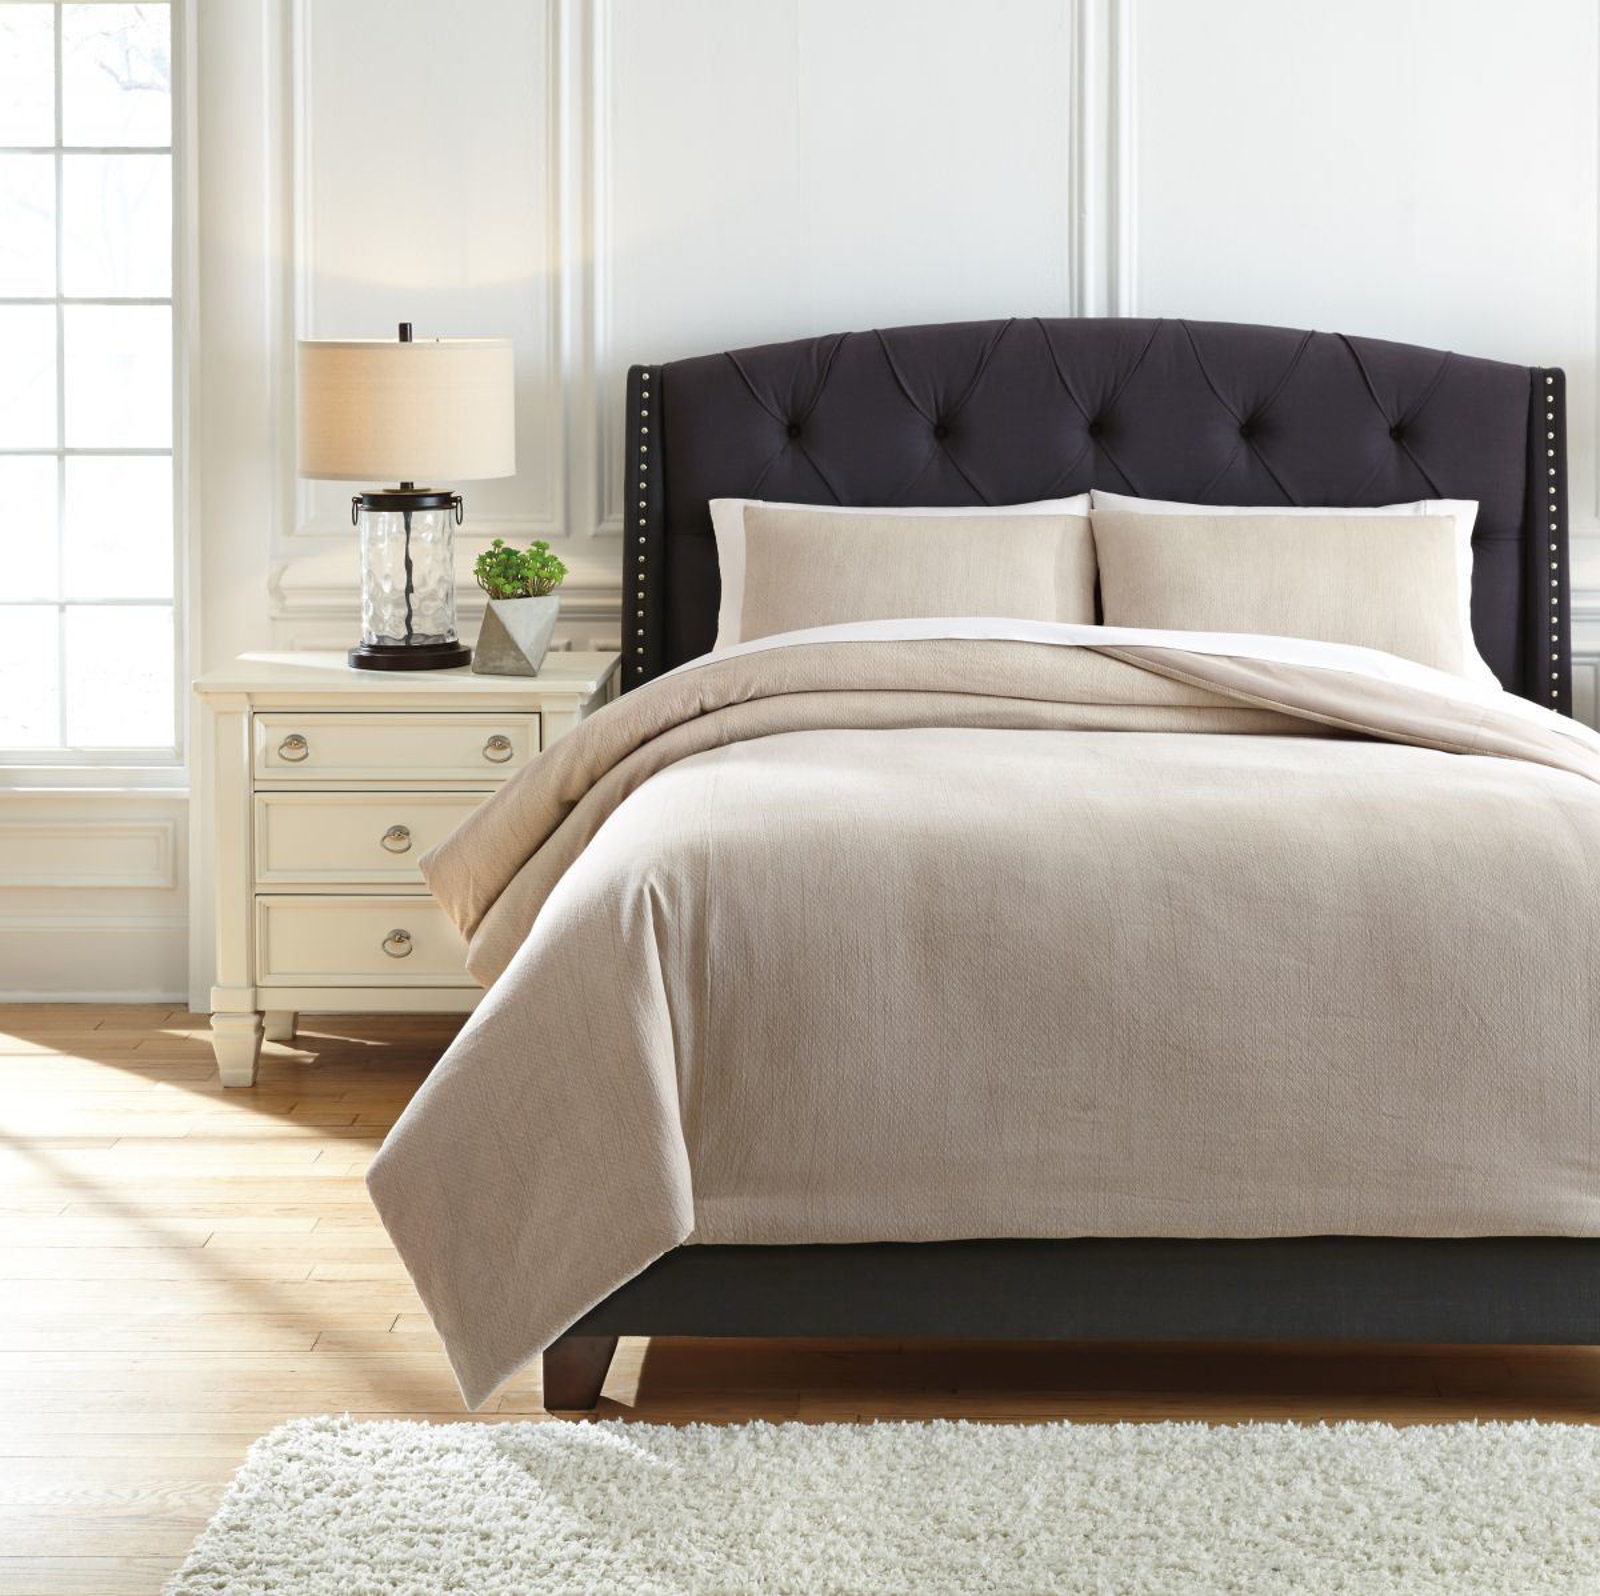 Picture of Mayda Queen Comforter Set